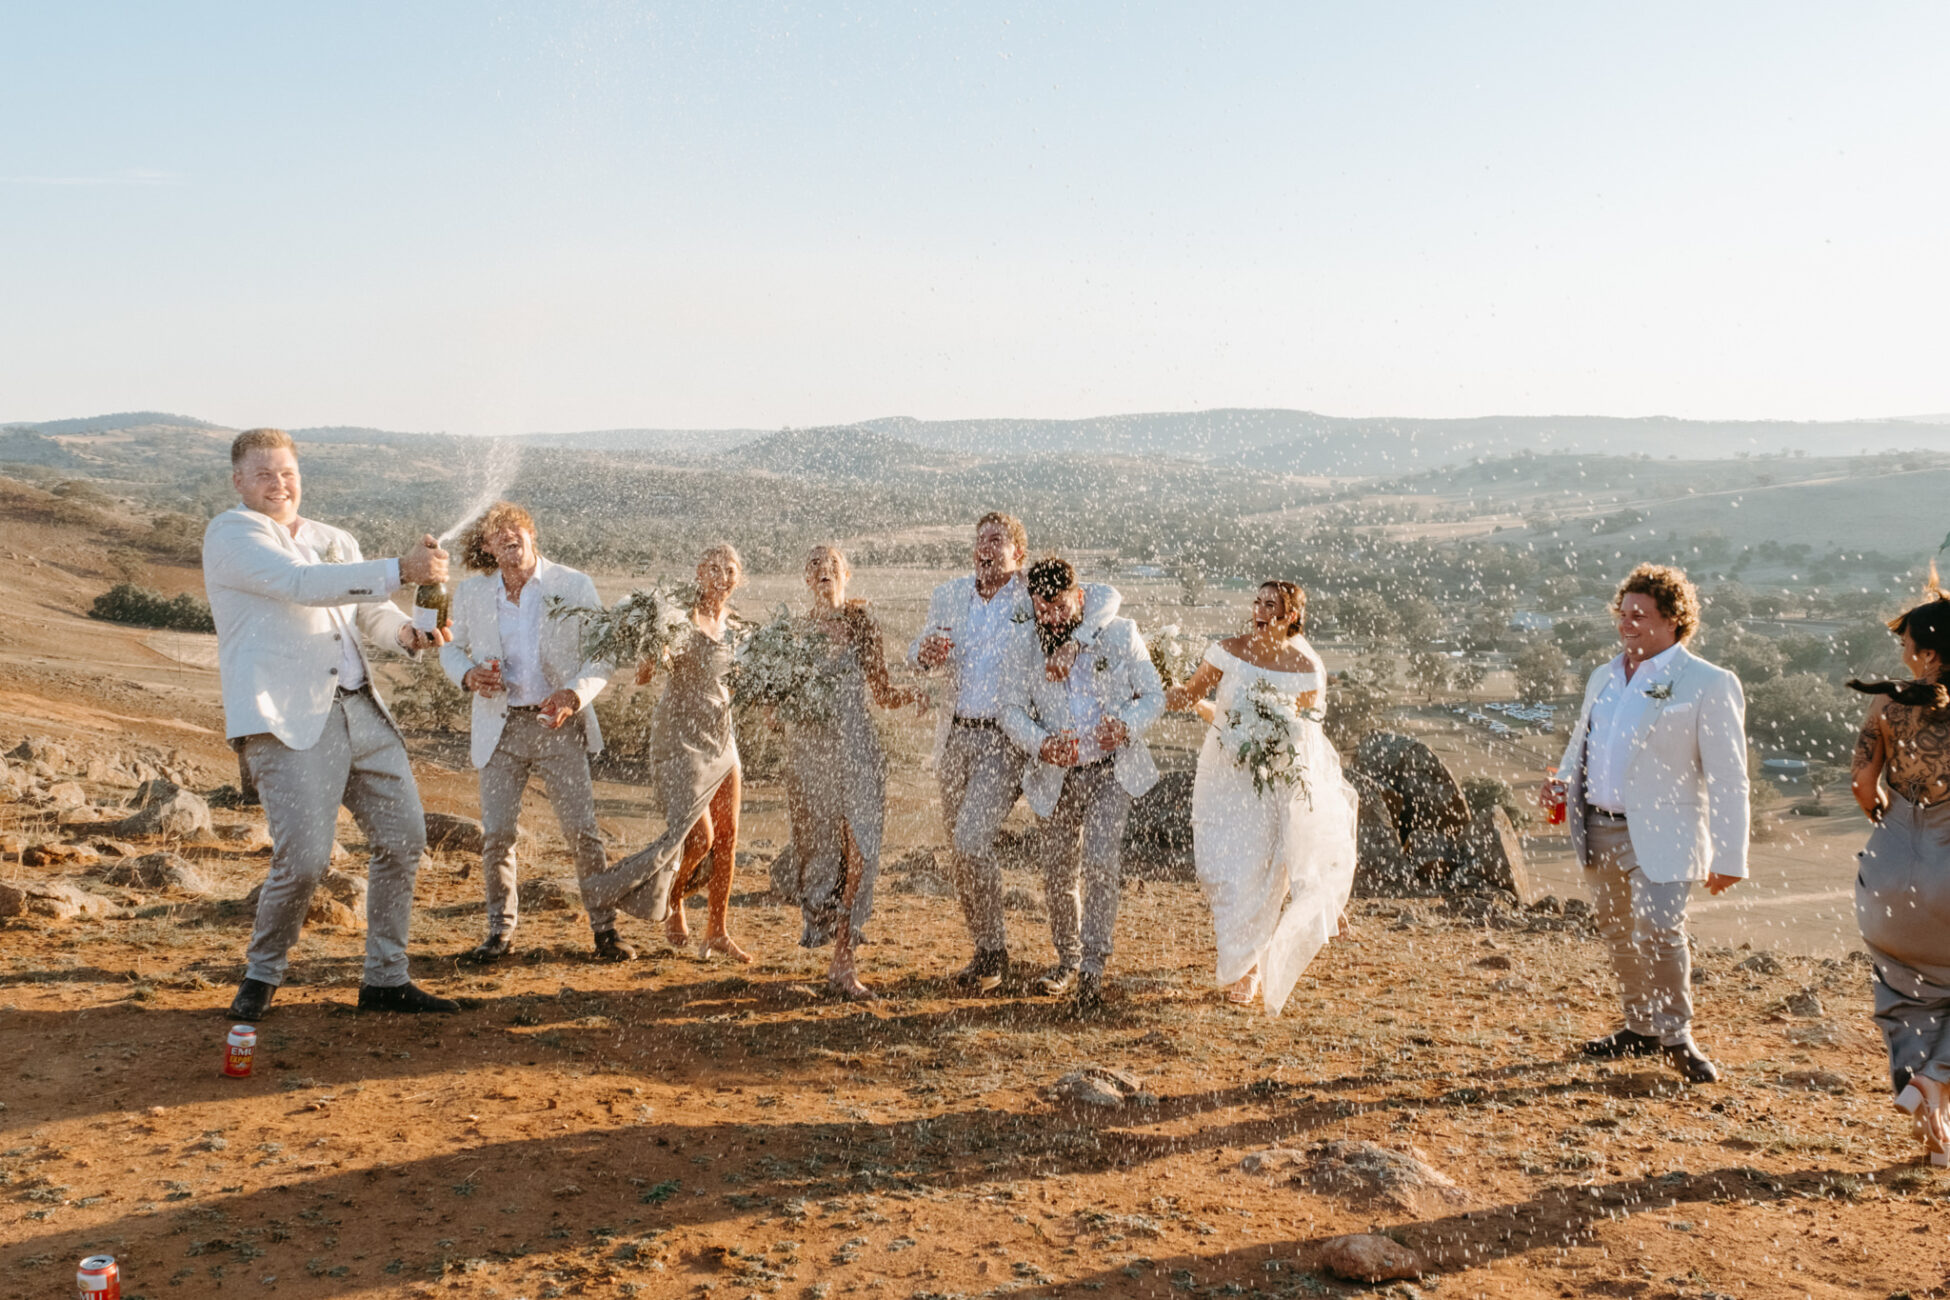 Champagne pop with bridal party, groom popping it and spraying bridal party